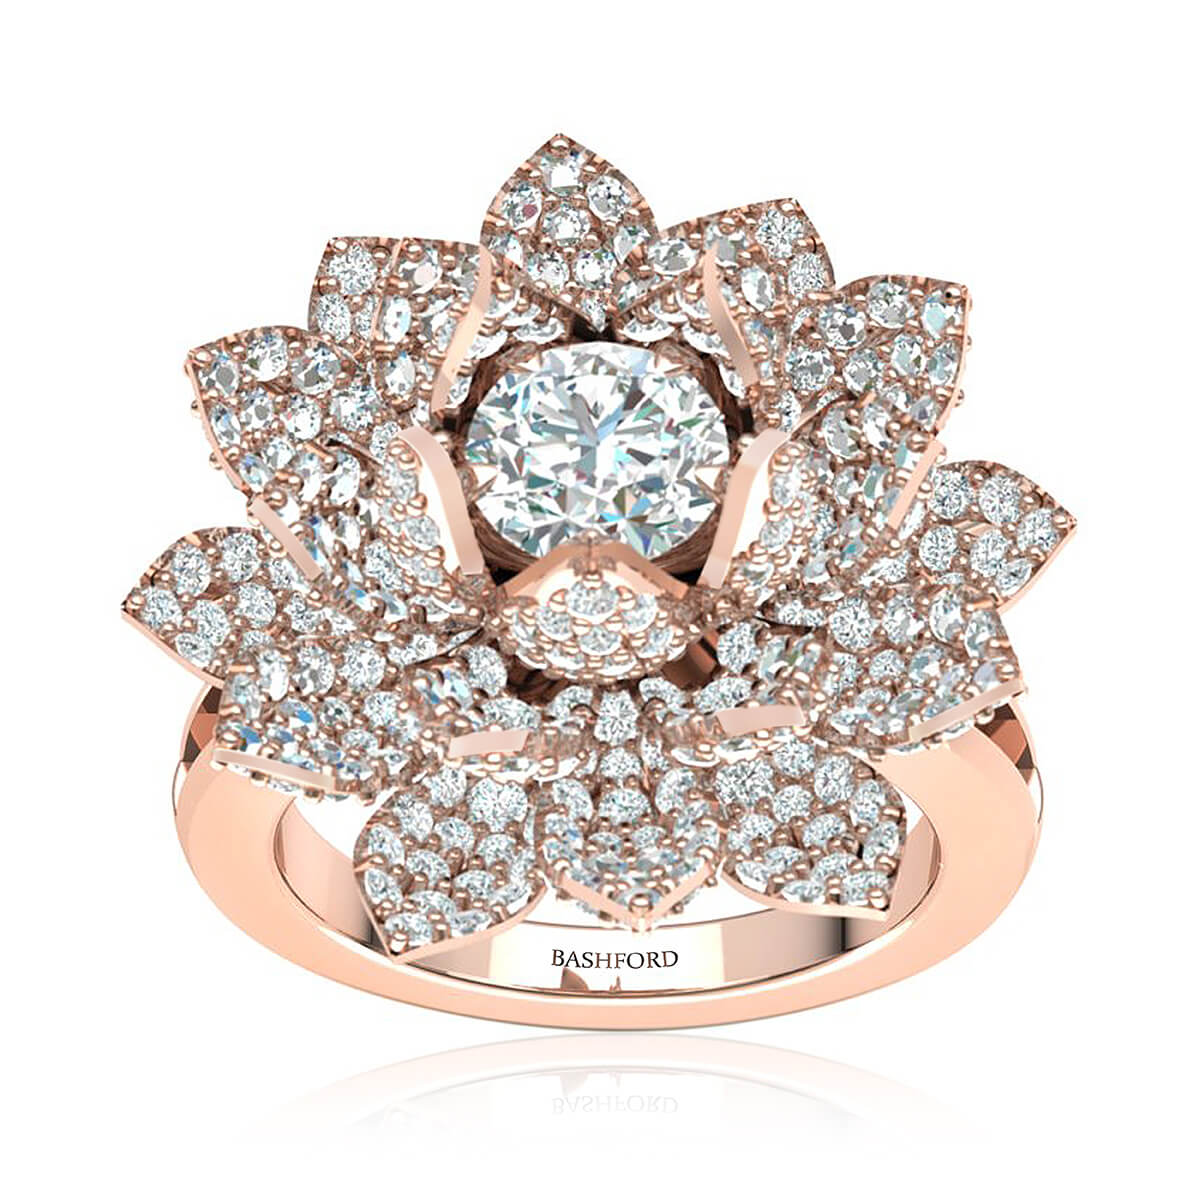 The Lotus Diamond Ring